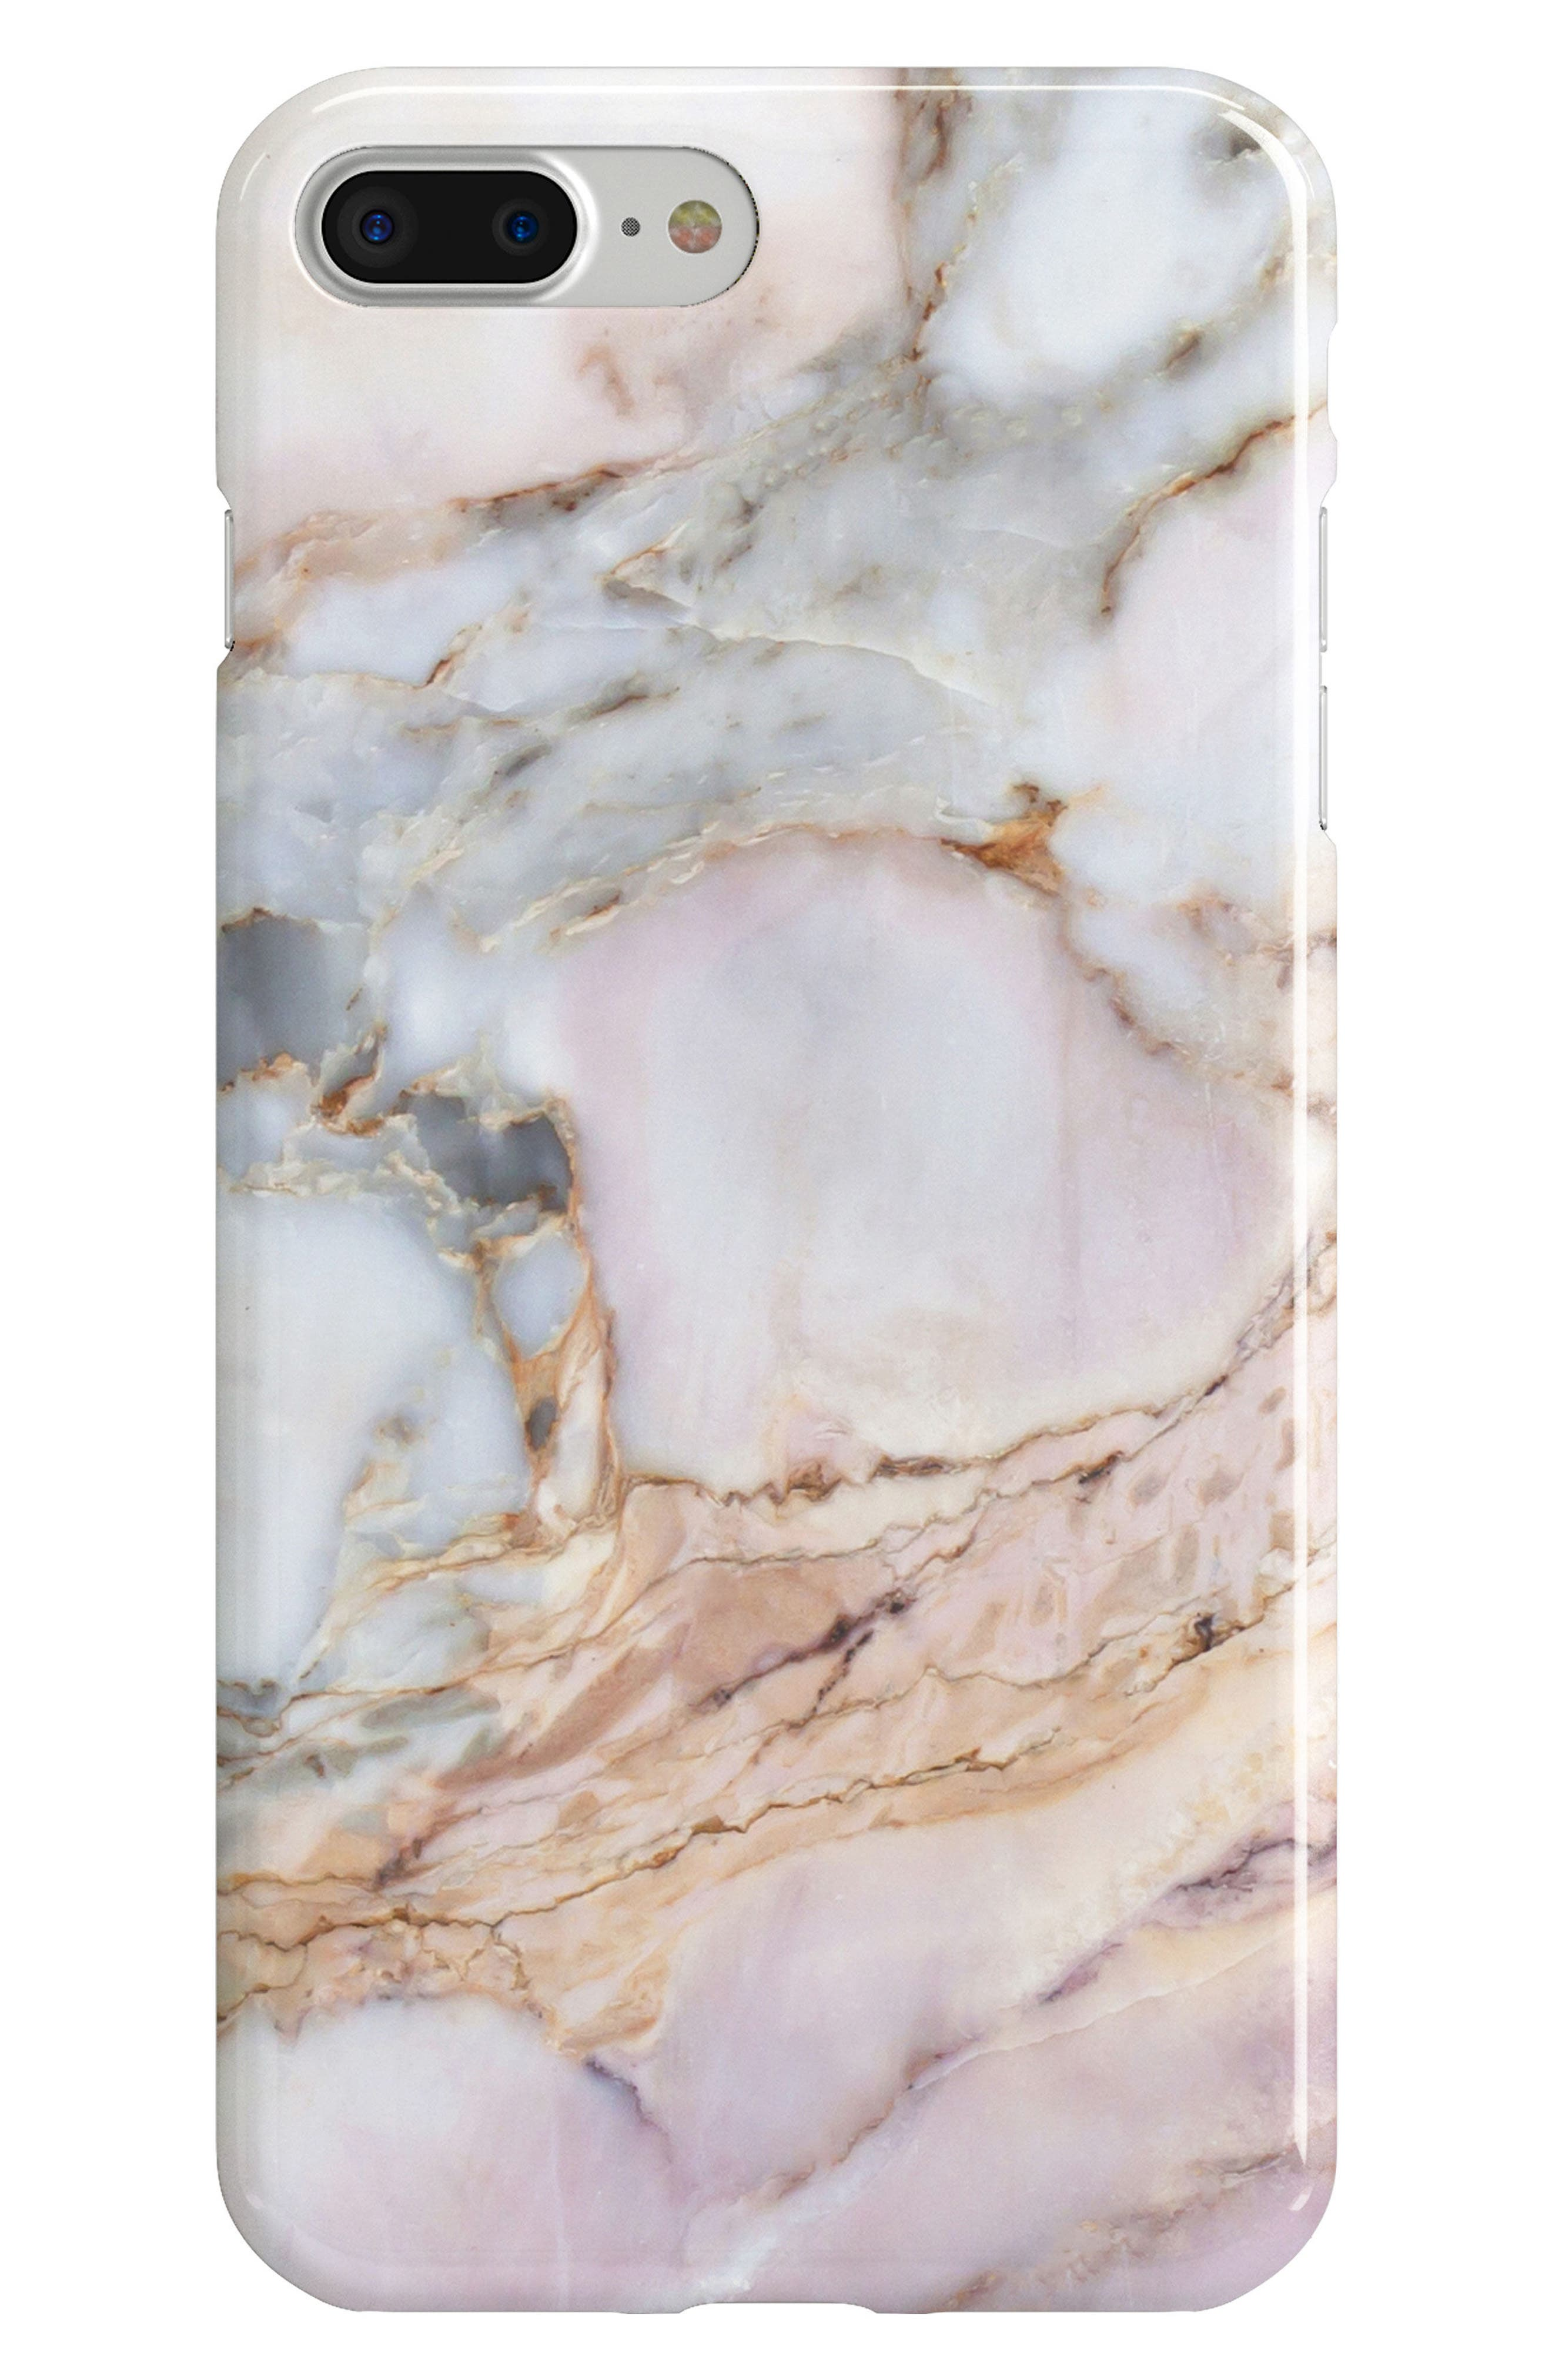 iphone 8 cell phone casesIphone 8 Plus New Cases Iphone 8 Plus Cases Designer Brands Iphone 8 Plus Case Custom Design I 6 Phone Case Iphone 8 Plus Designer Cases Gucci #3